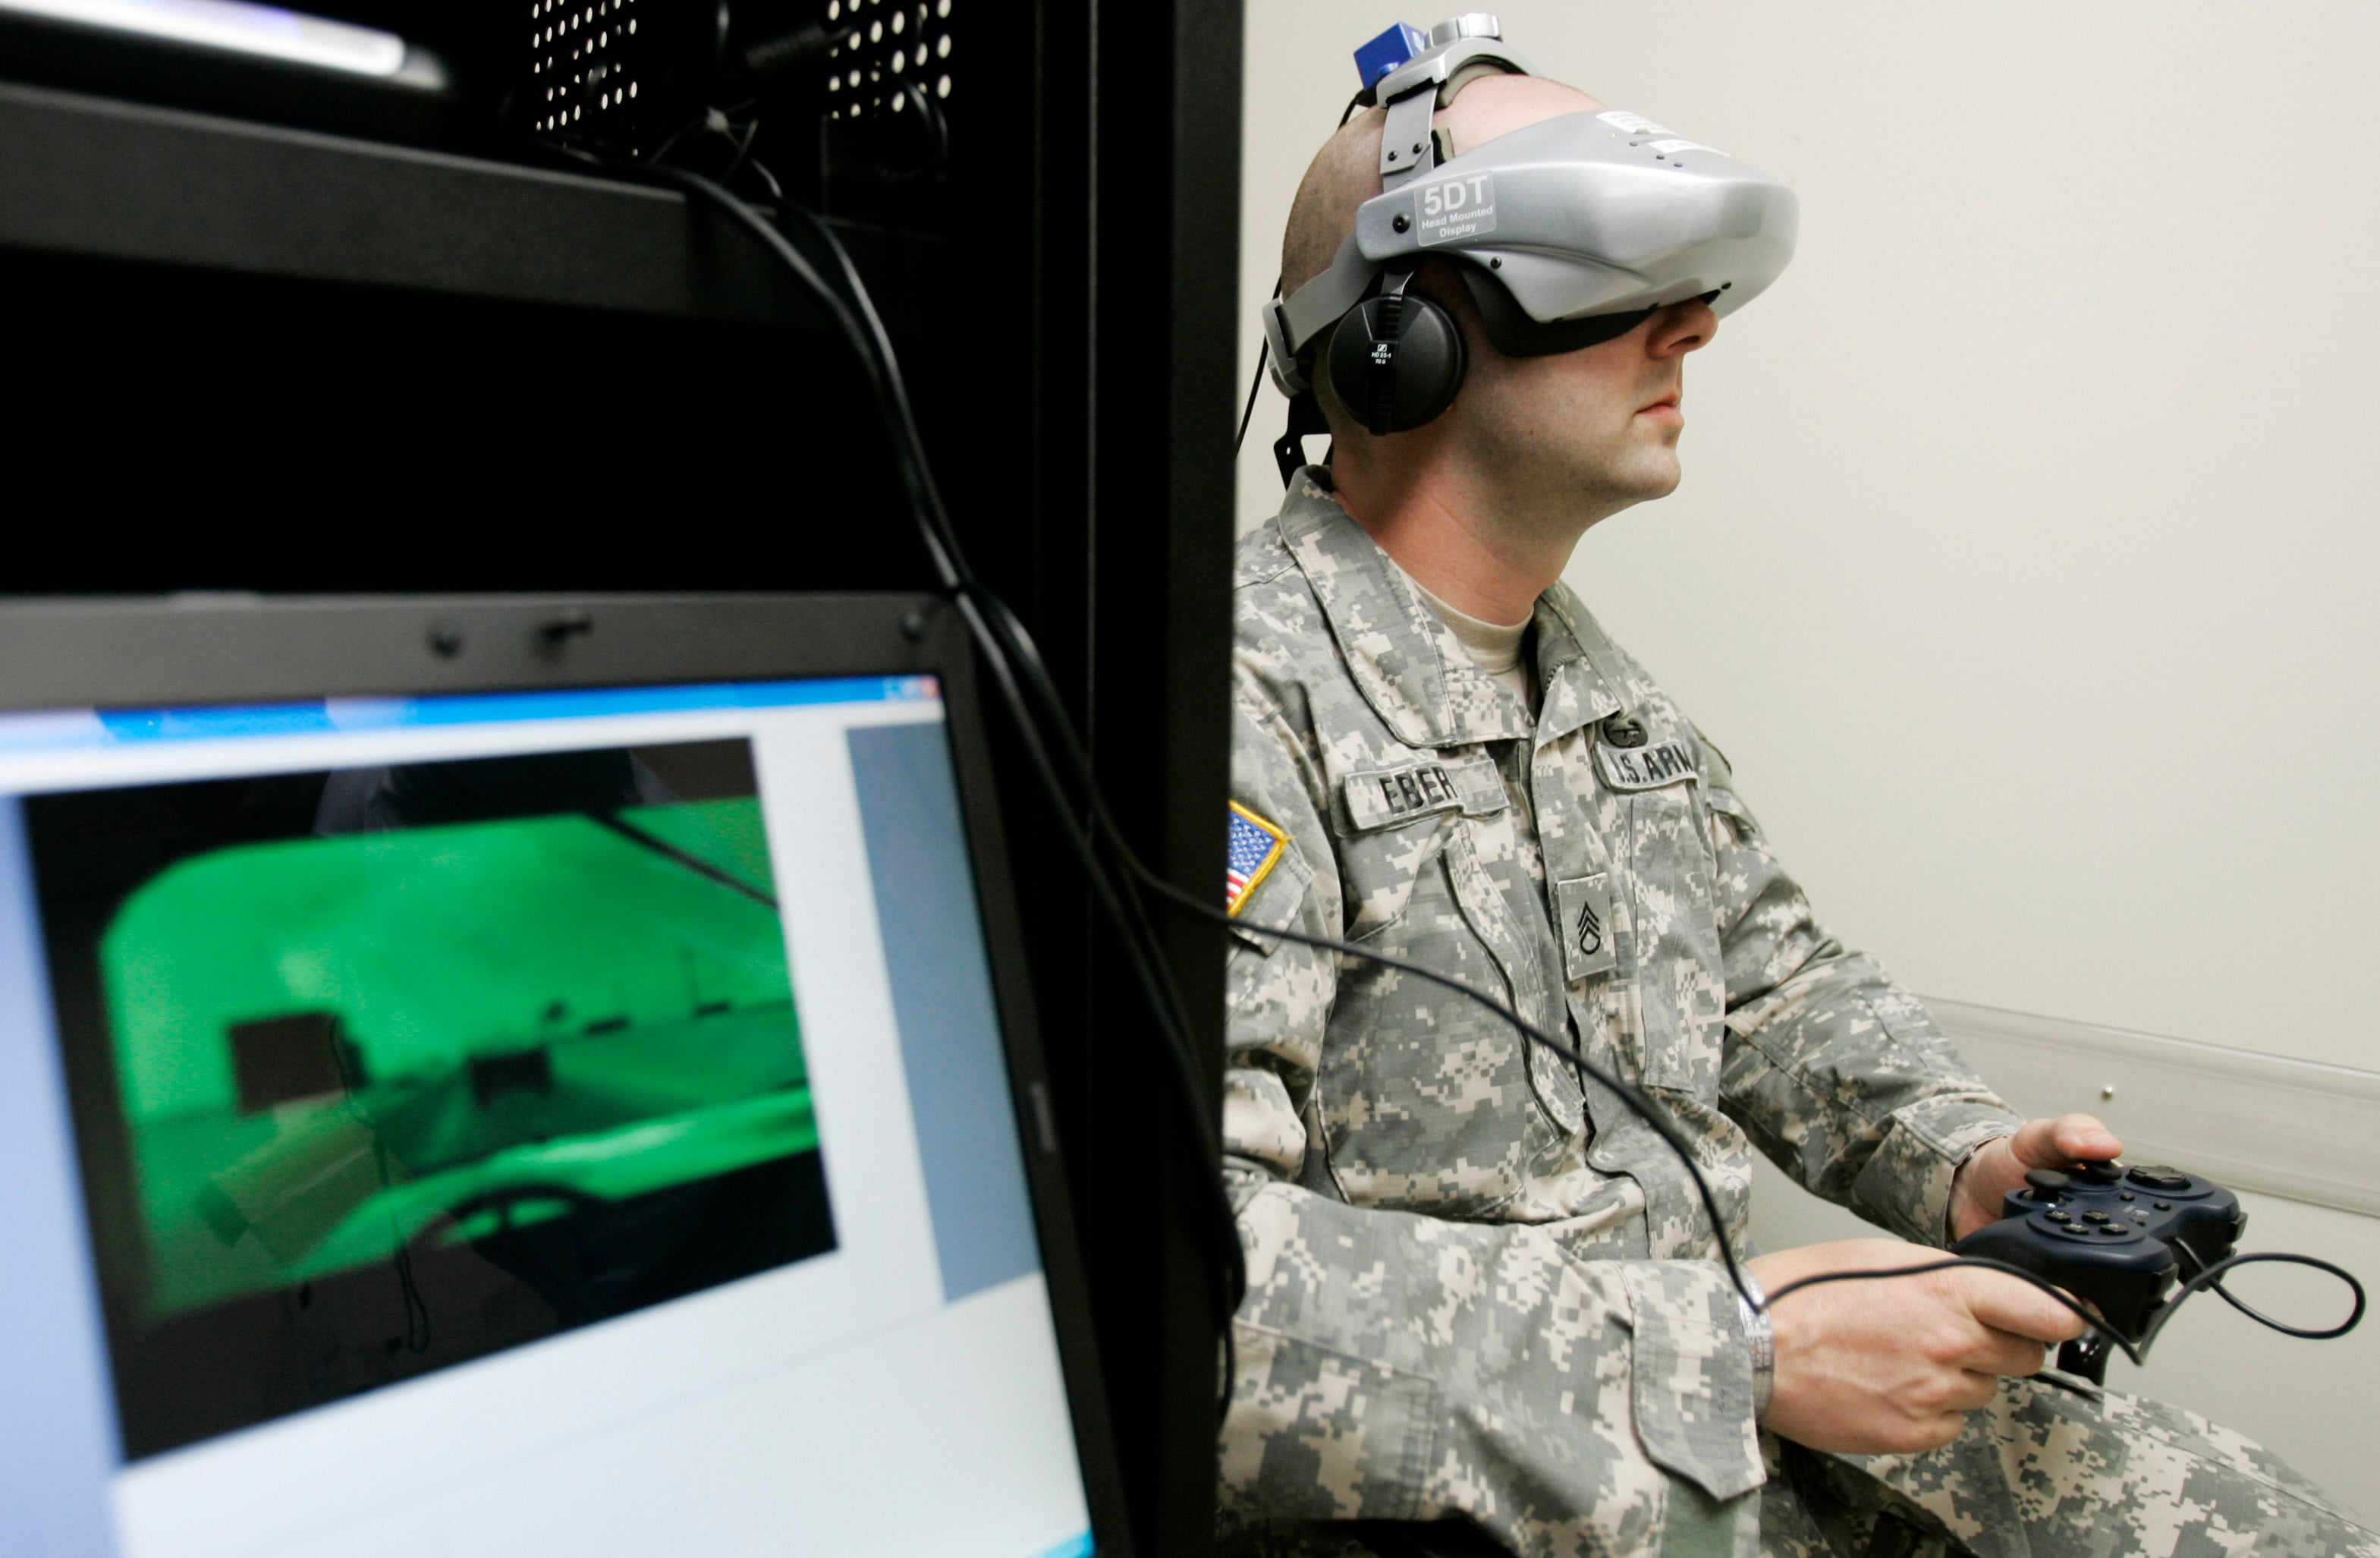 8 Ways Virtual Reality Is For More Than Just Video Games